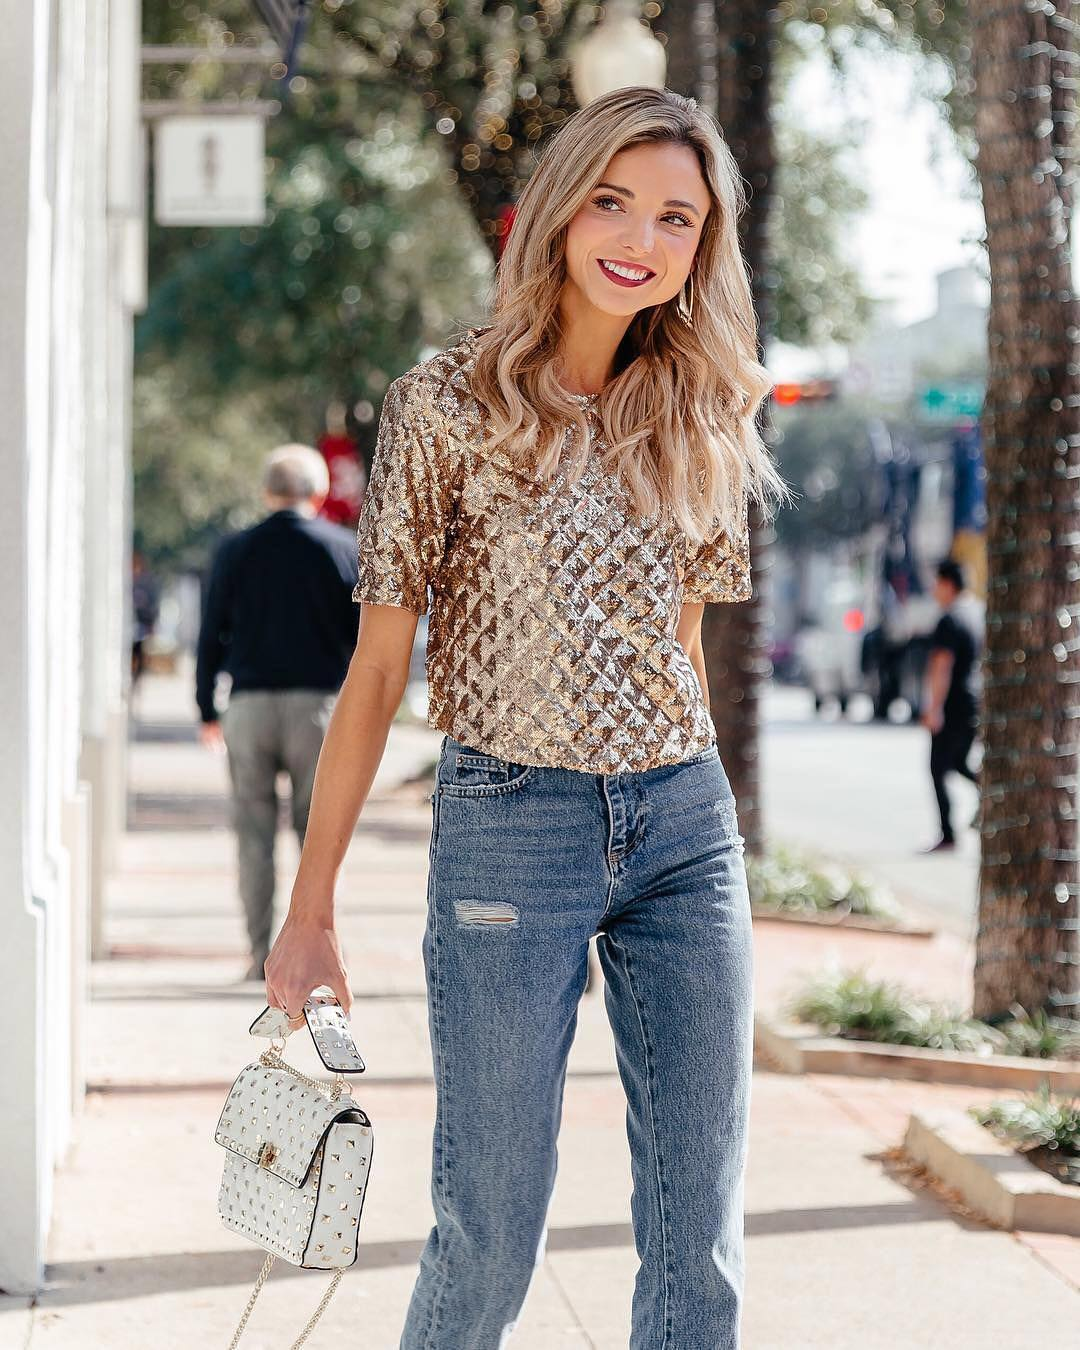 7 Elegant Outfit Ideas for Spring 721 - Styles Weekly